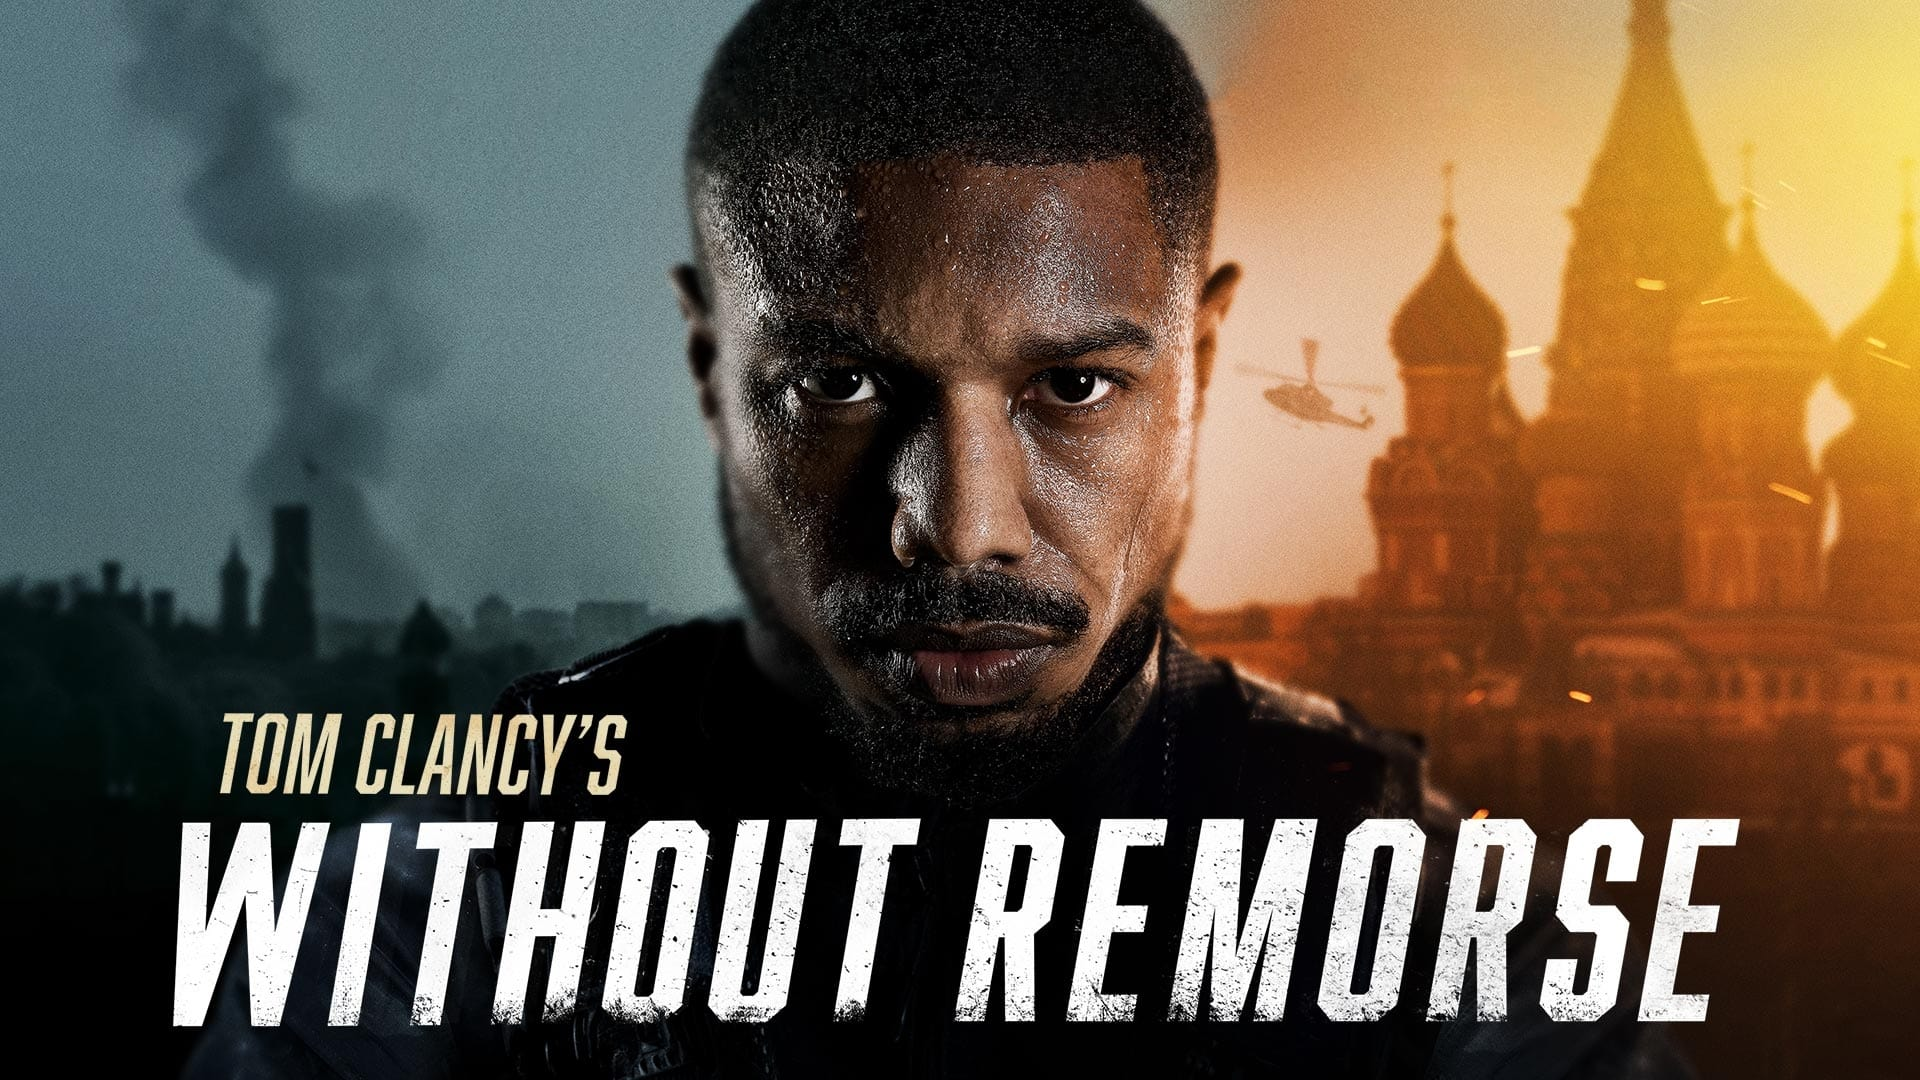 Tom Clancy's Without Remorse-poster-2